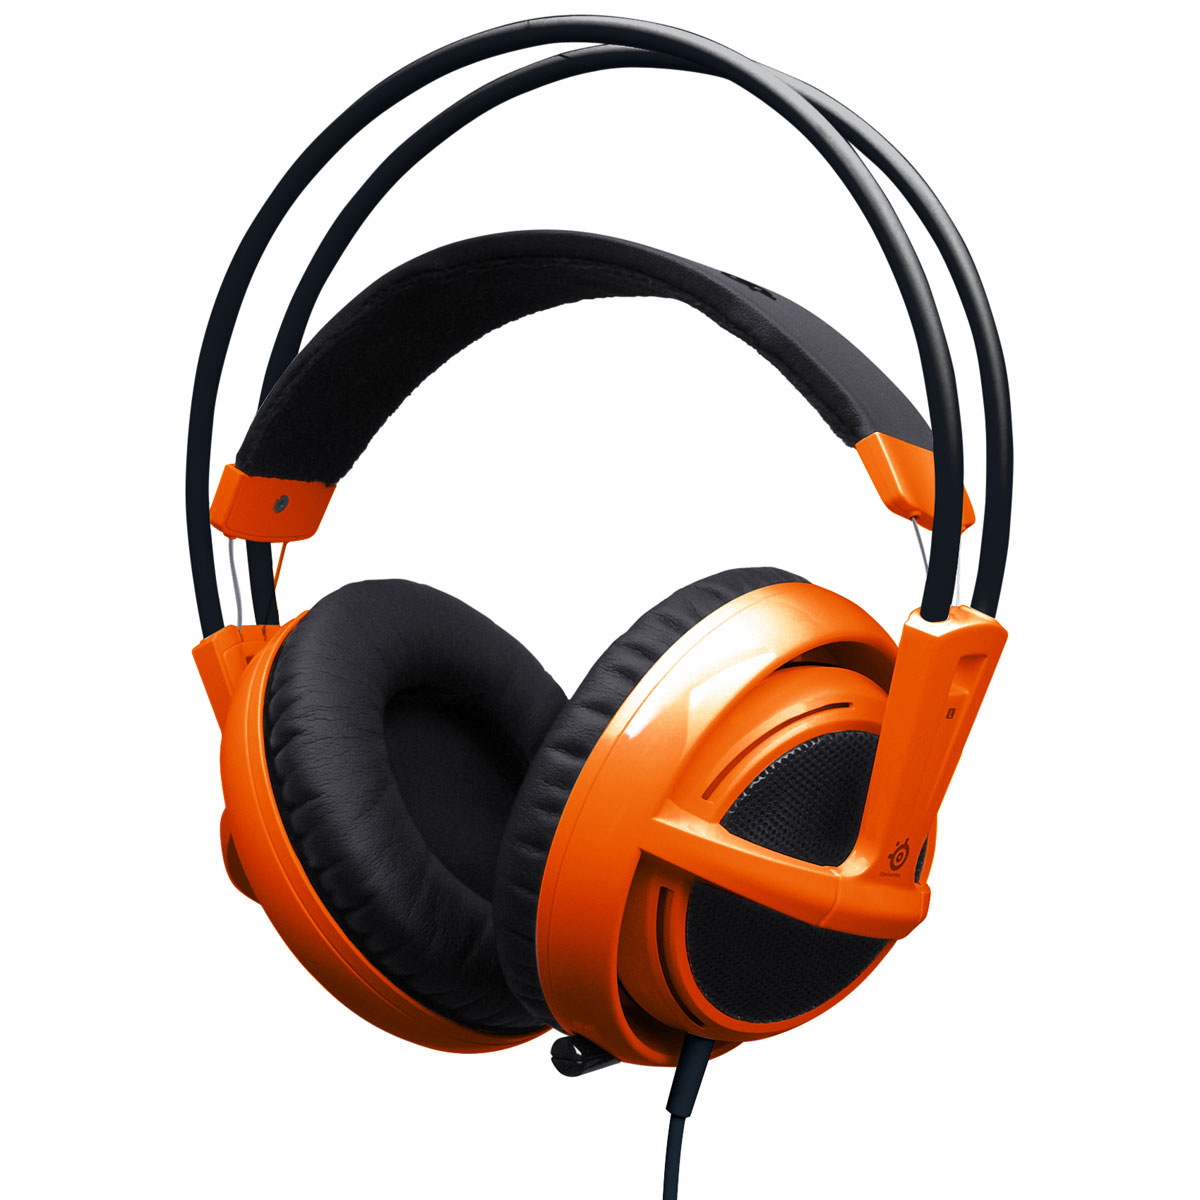 steelseries siberia v2 orange micro casque steelseries sur ldlc. Black Bedroom Furniture Sets. Home Design Ideas